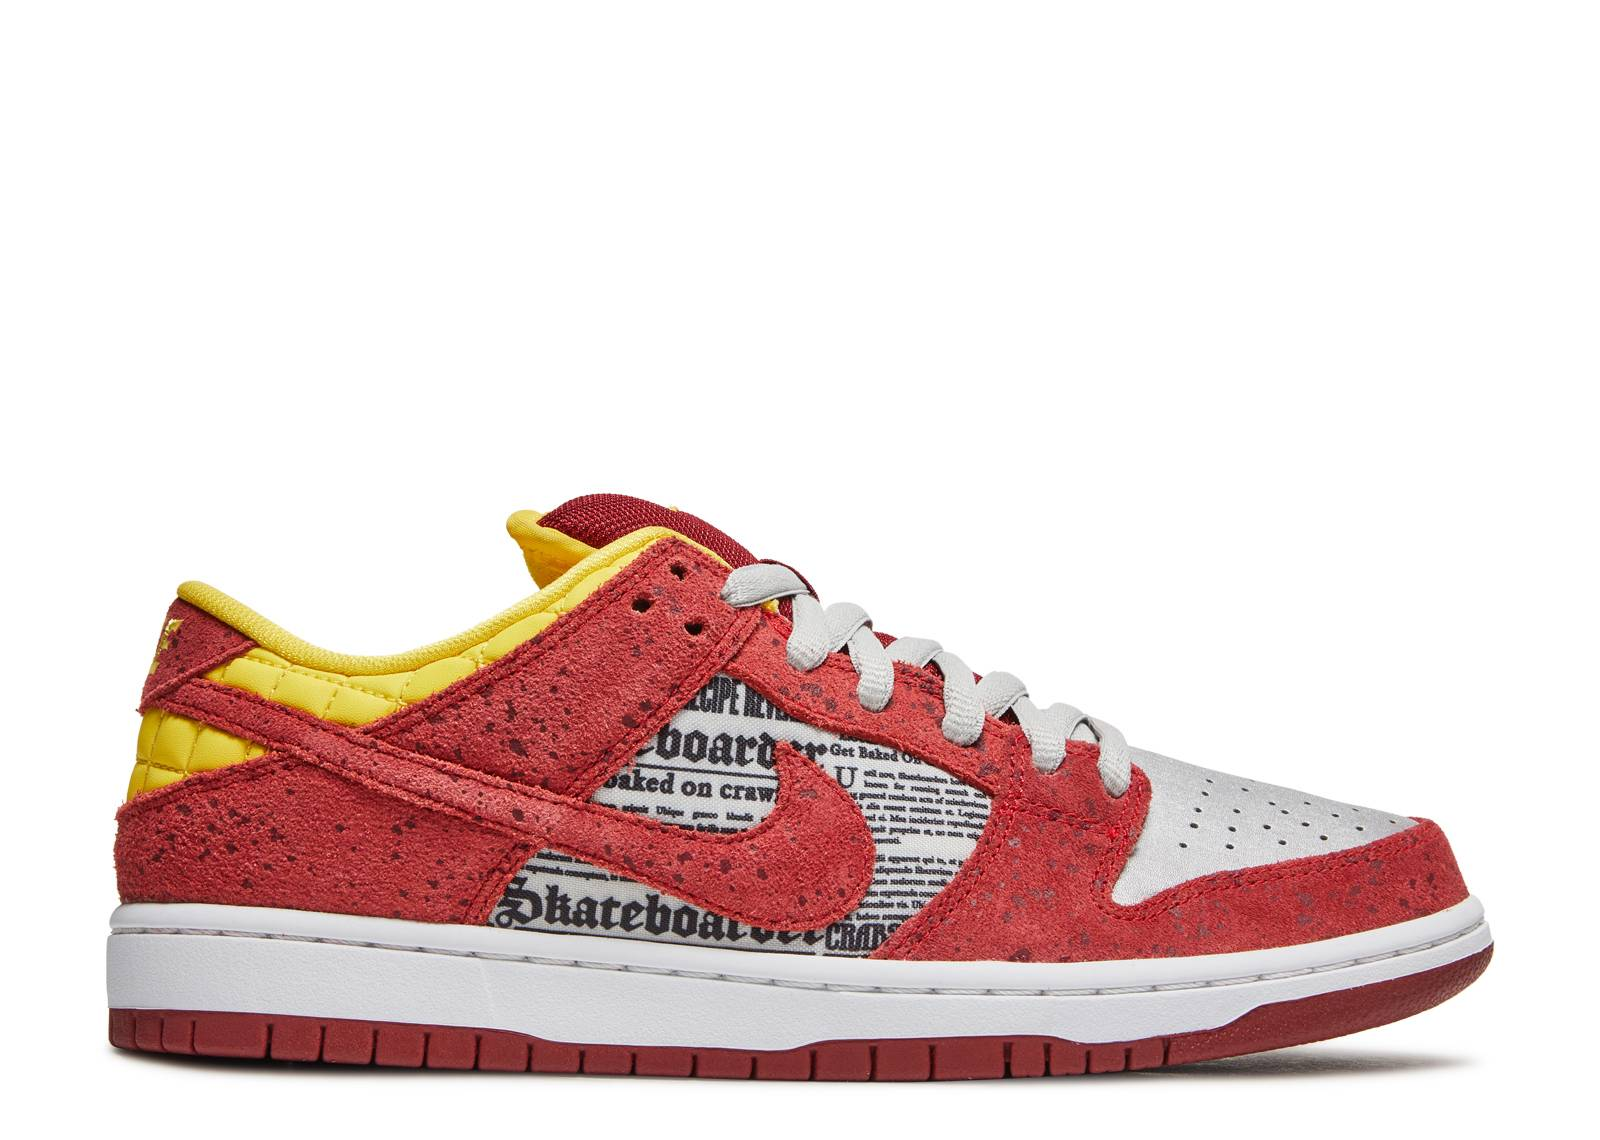 Supreme x Nike SB Dunk Low Fall '19 Release Info: How to Buy